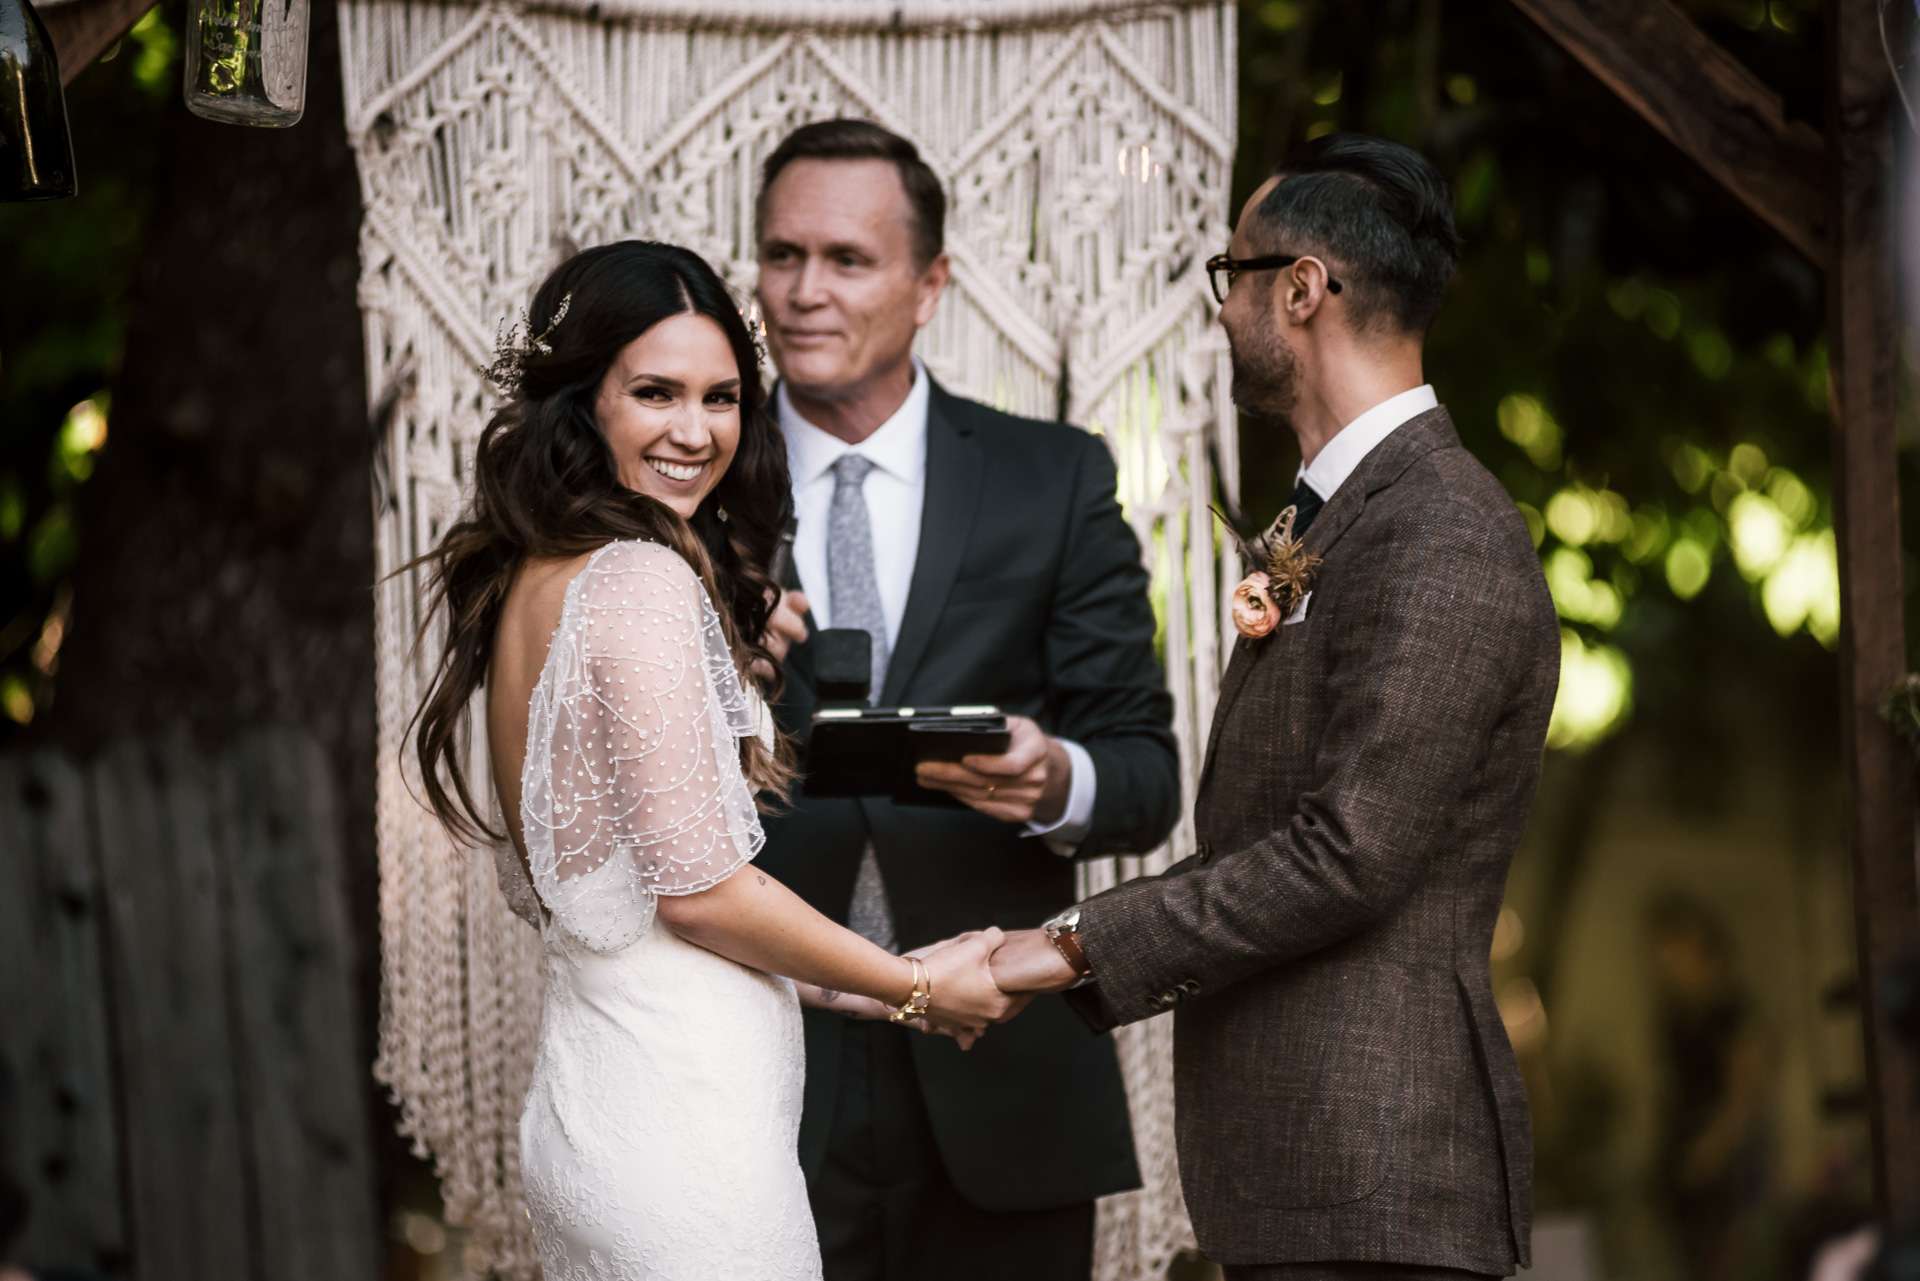 bride looks to her family and friends with a smile shot by wedding photographer at the charming St. George Hotel in Volcano California